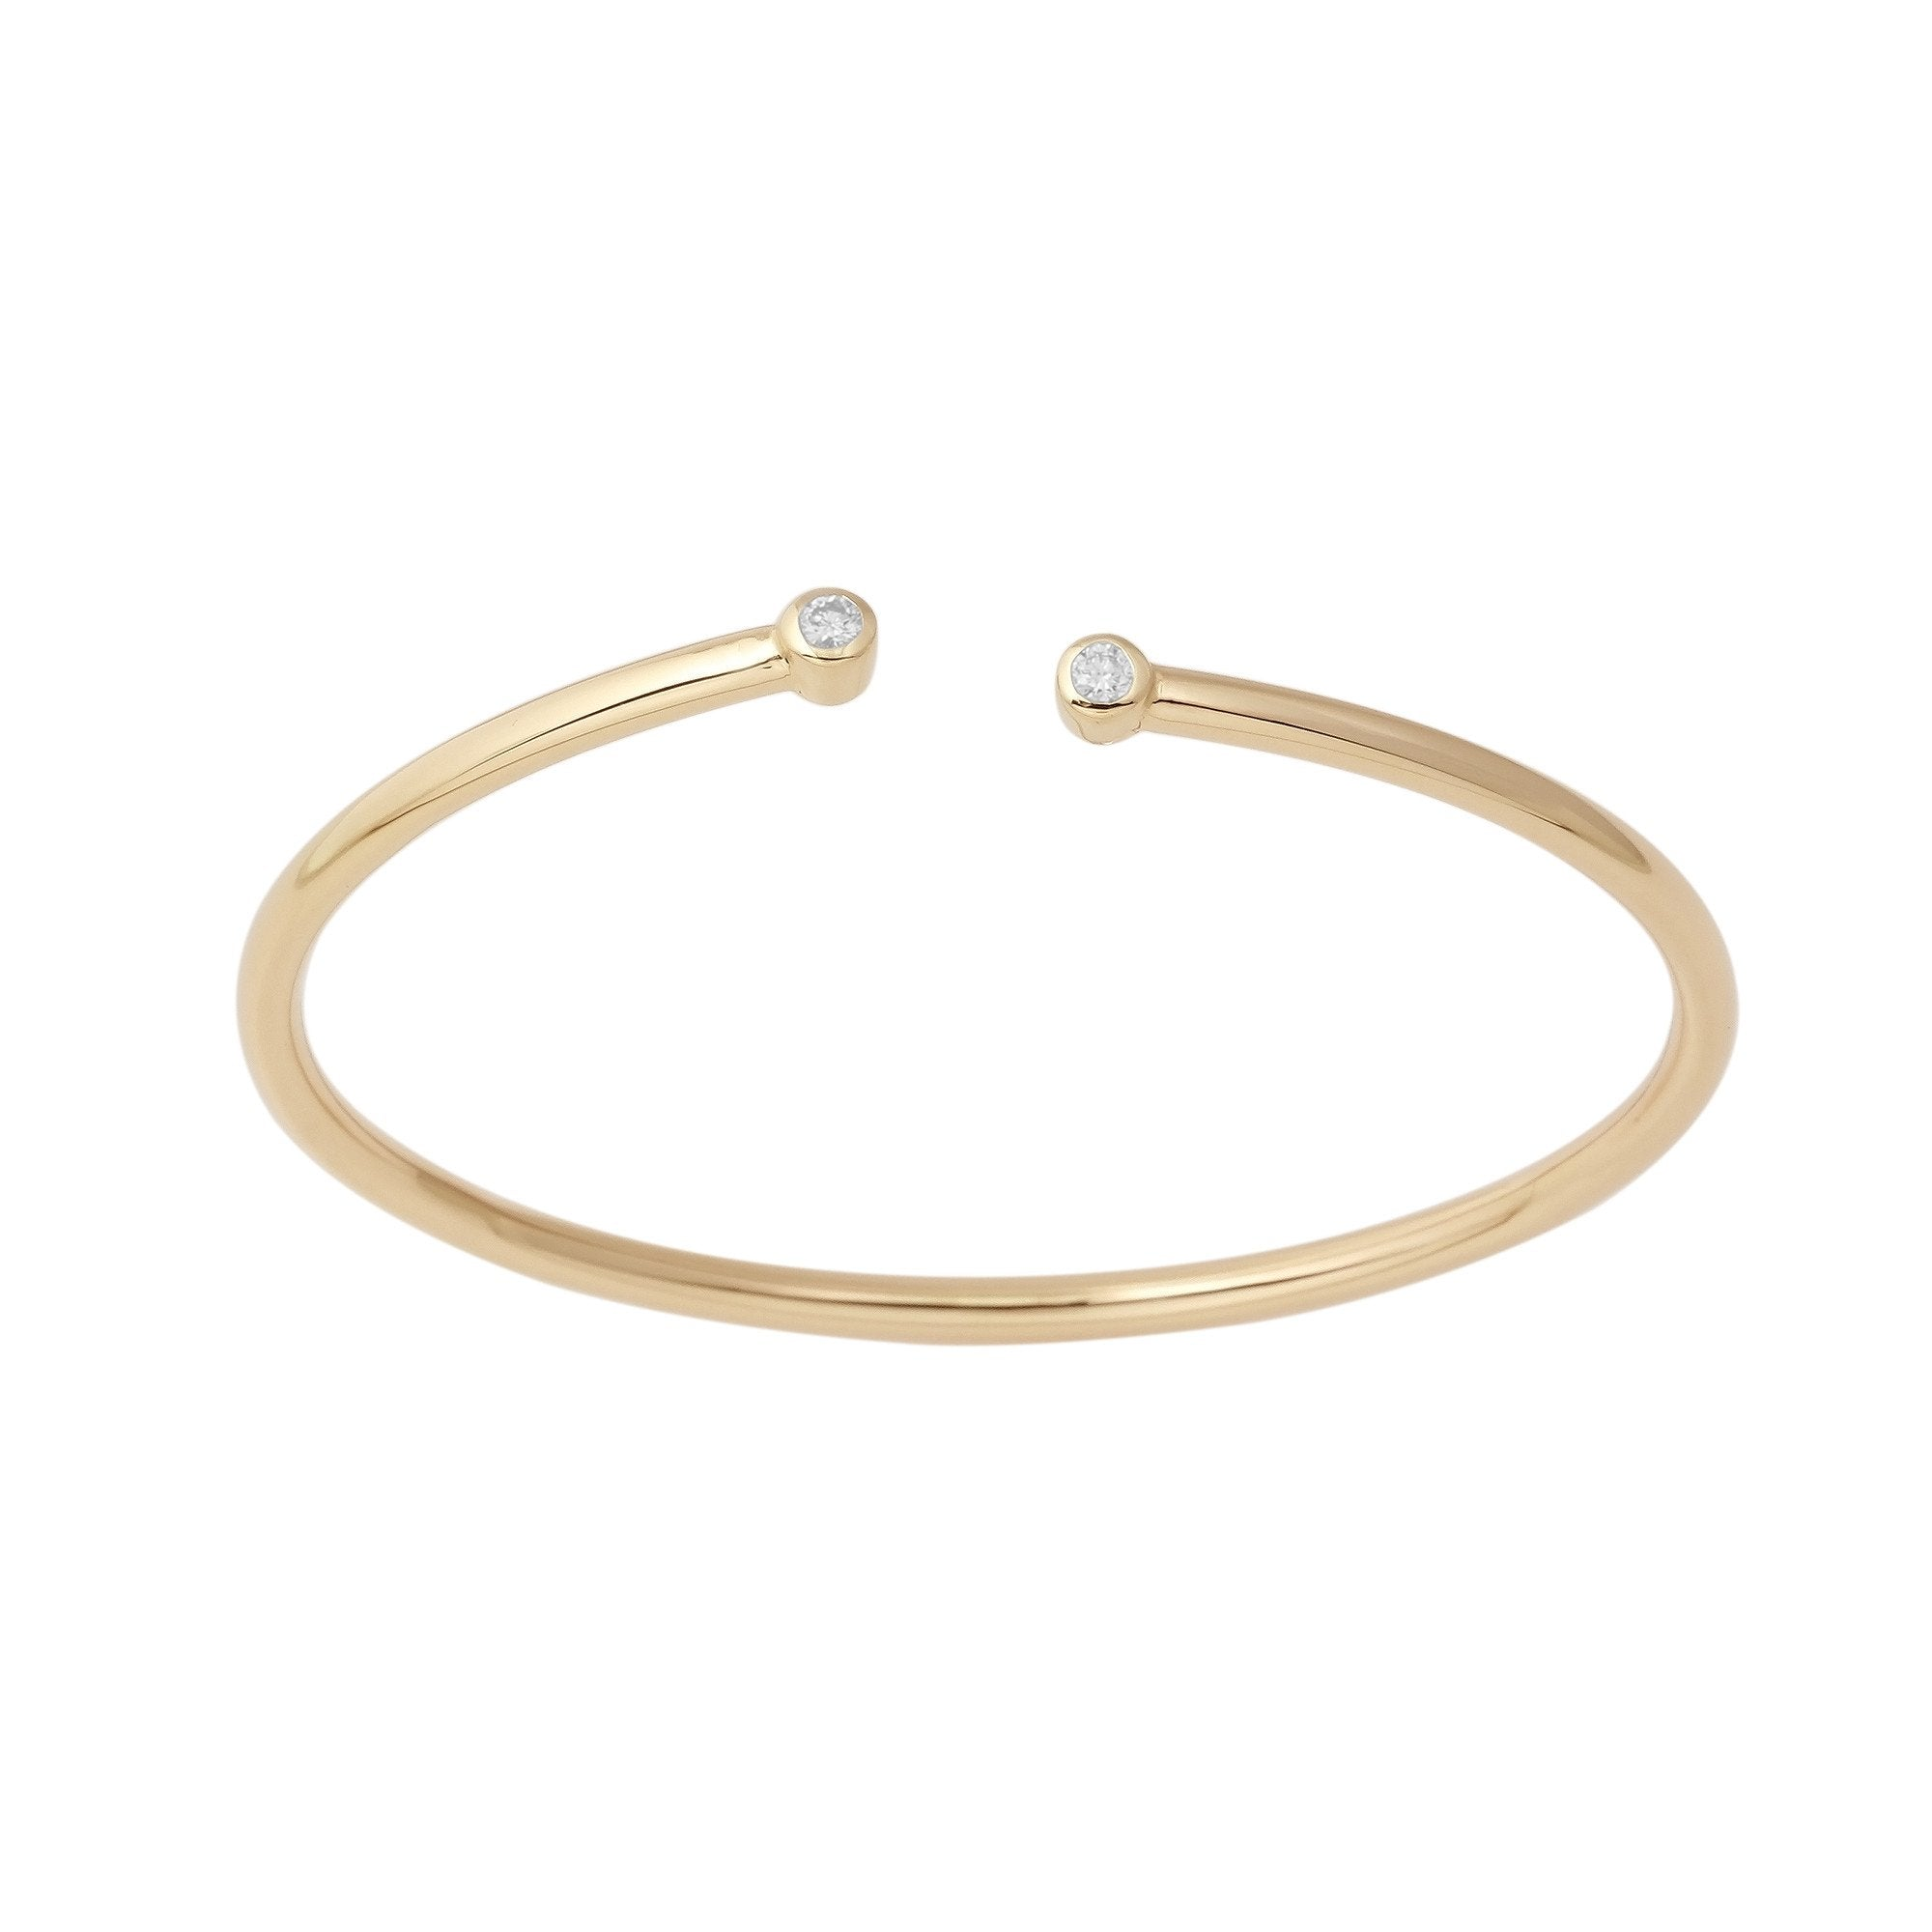 14K Yellow Gold Flexible Diamond Bangle Bracelet 2 Stone